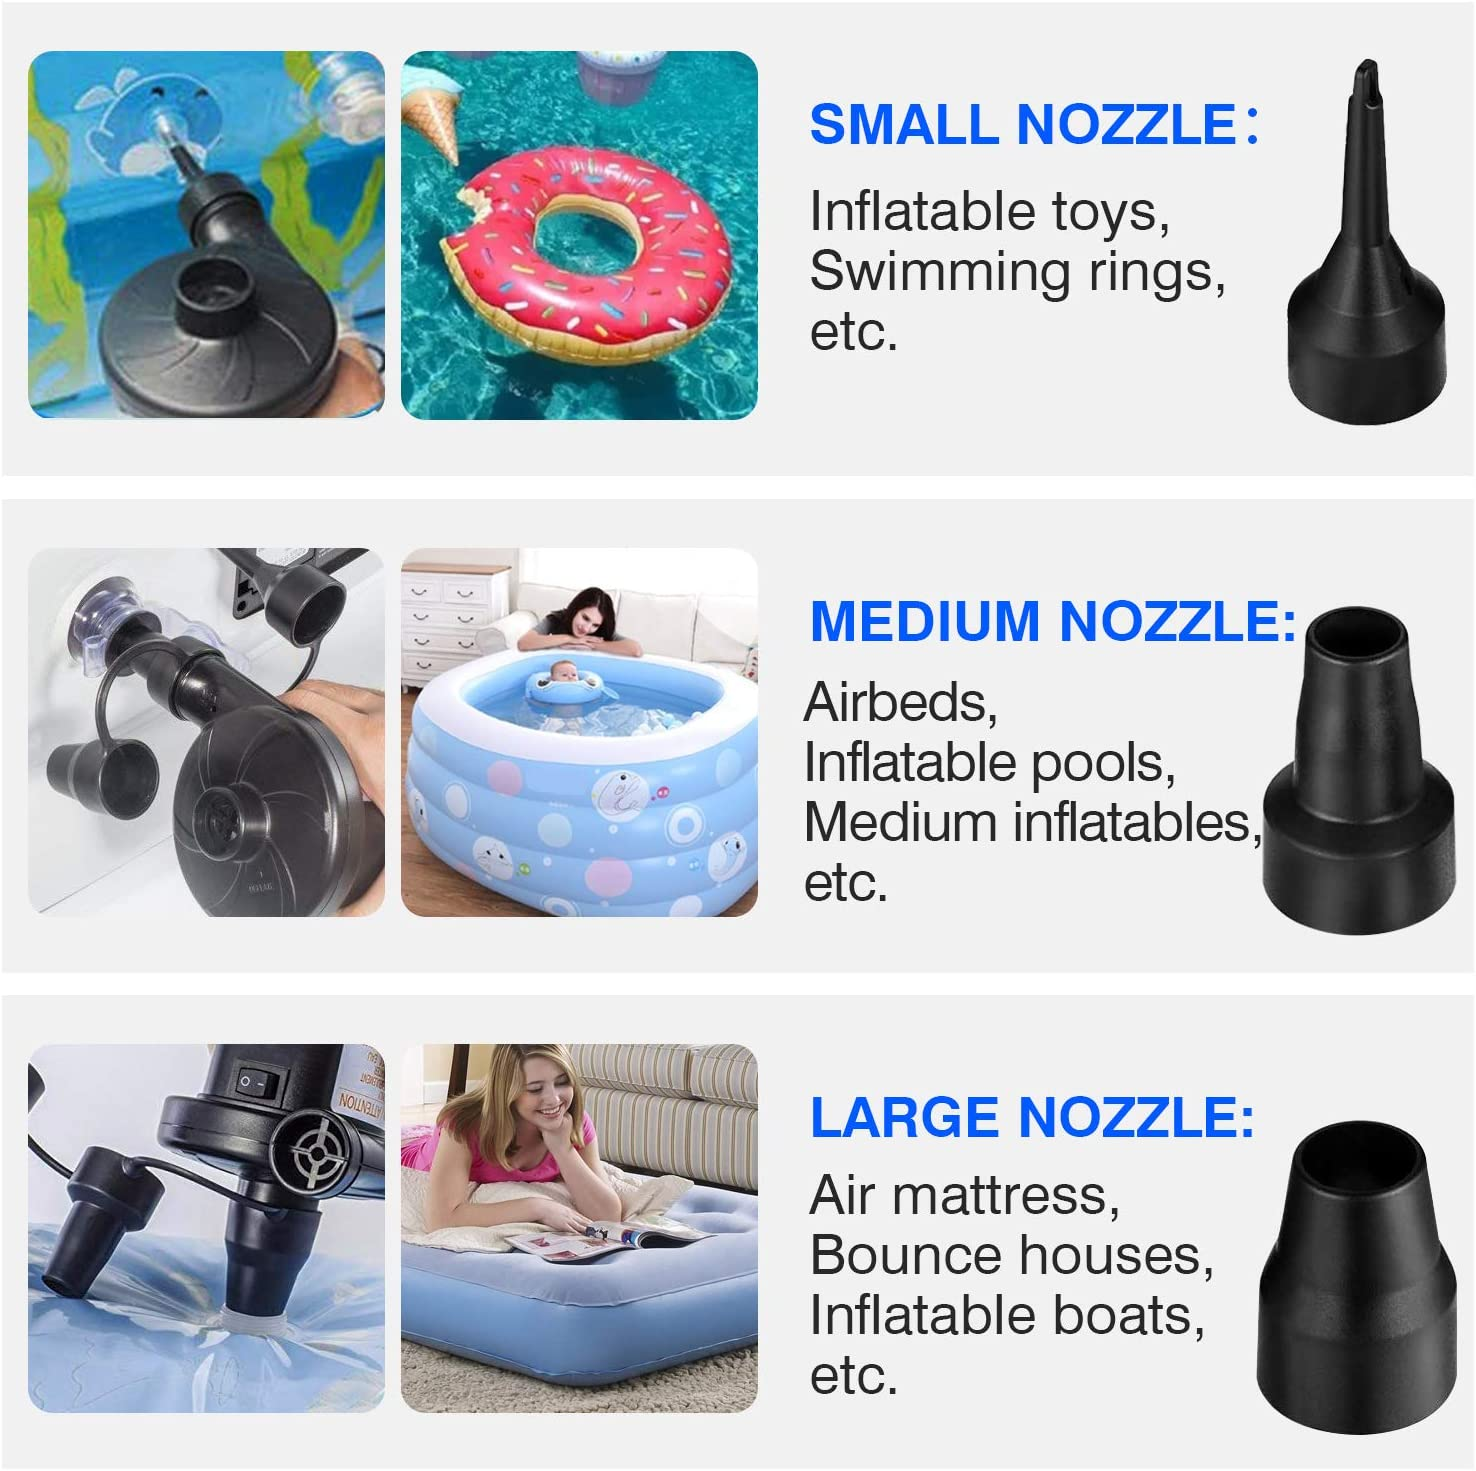 semai Electric Air Pump Portable Quick-Fill Air Pump for Inflatable Couch, Air Mattress, Swimming Ring, Inflatable Pool Toys, Powerful Electric Inflator/Deflator Air Pump with 3 Nozzles 110V AC: Sports & Outdoors